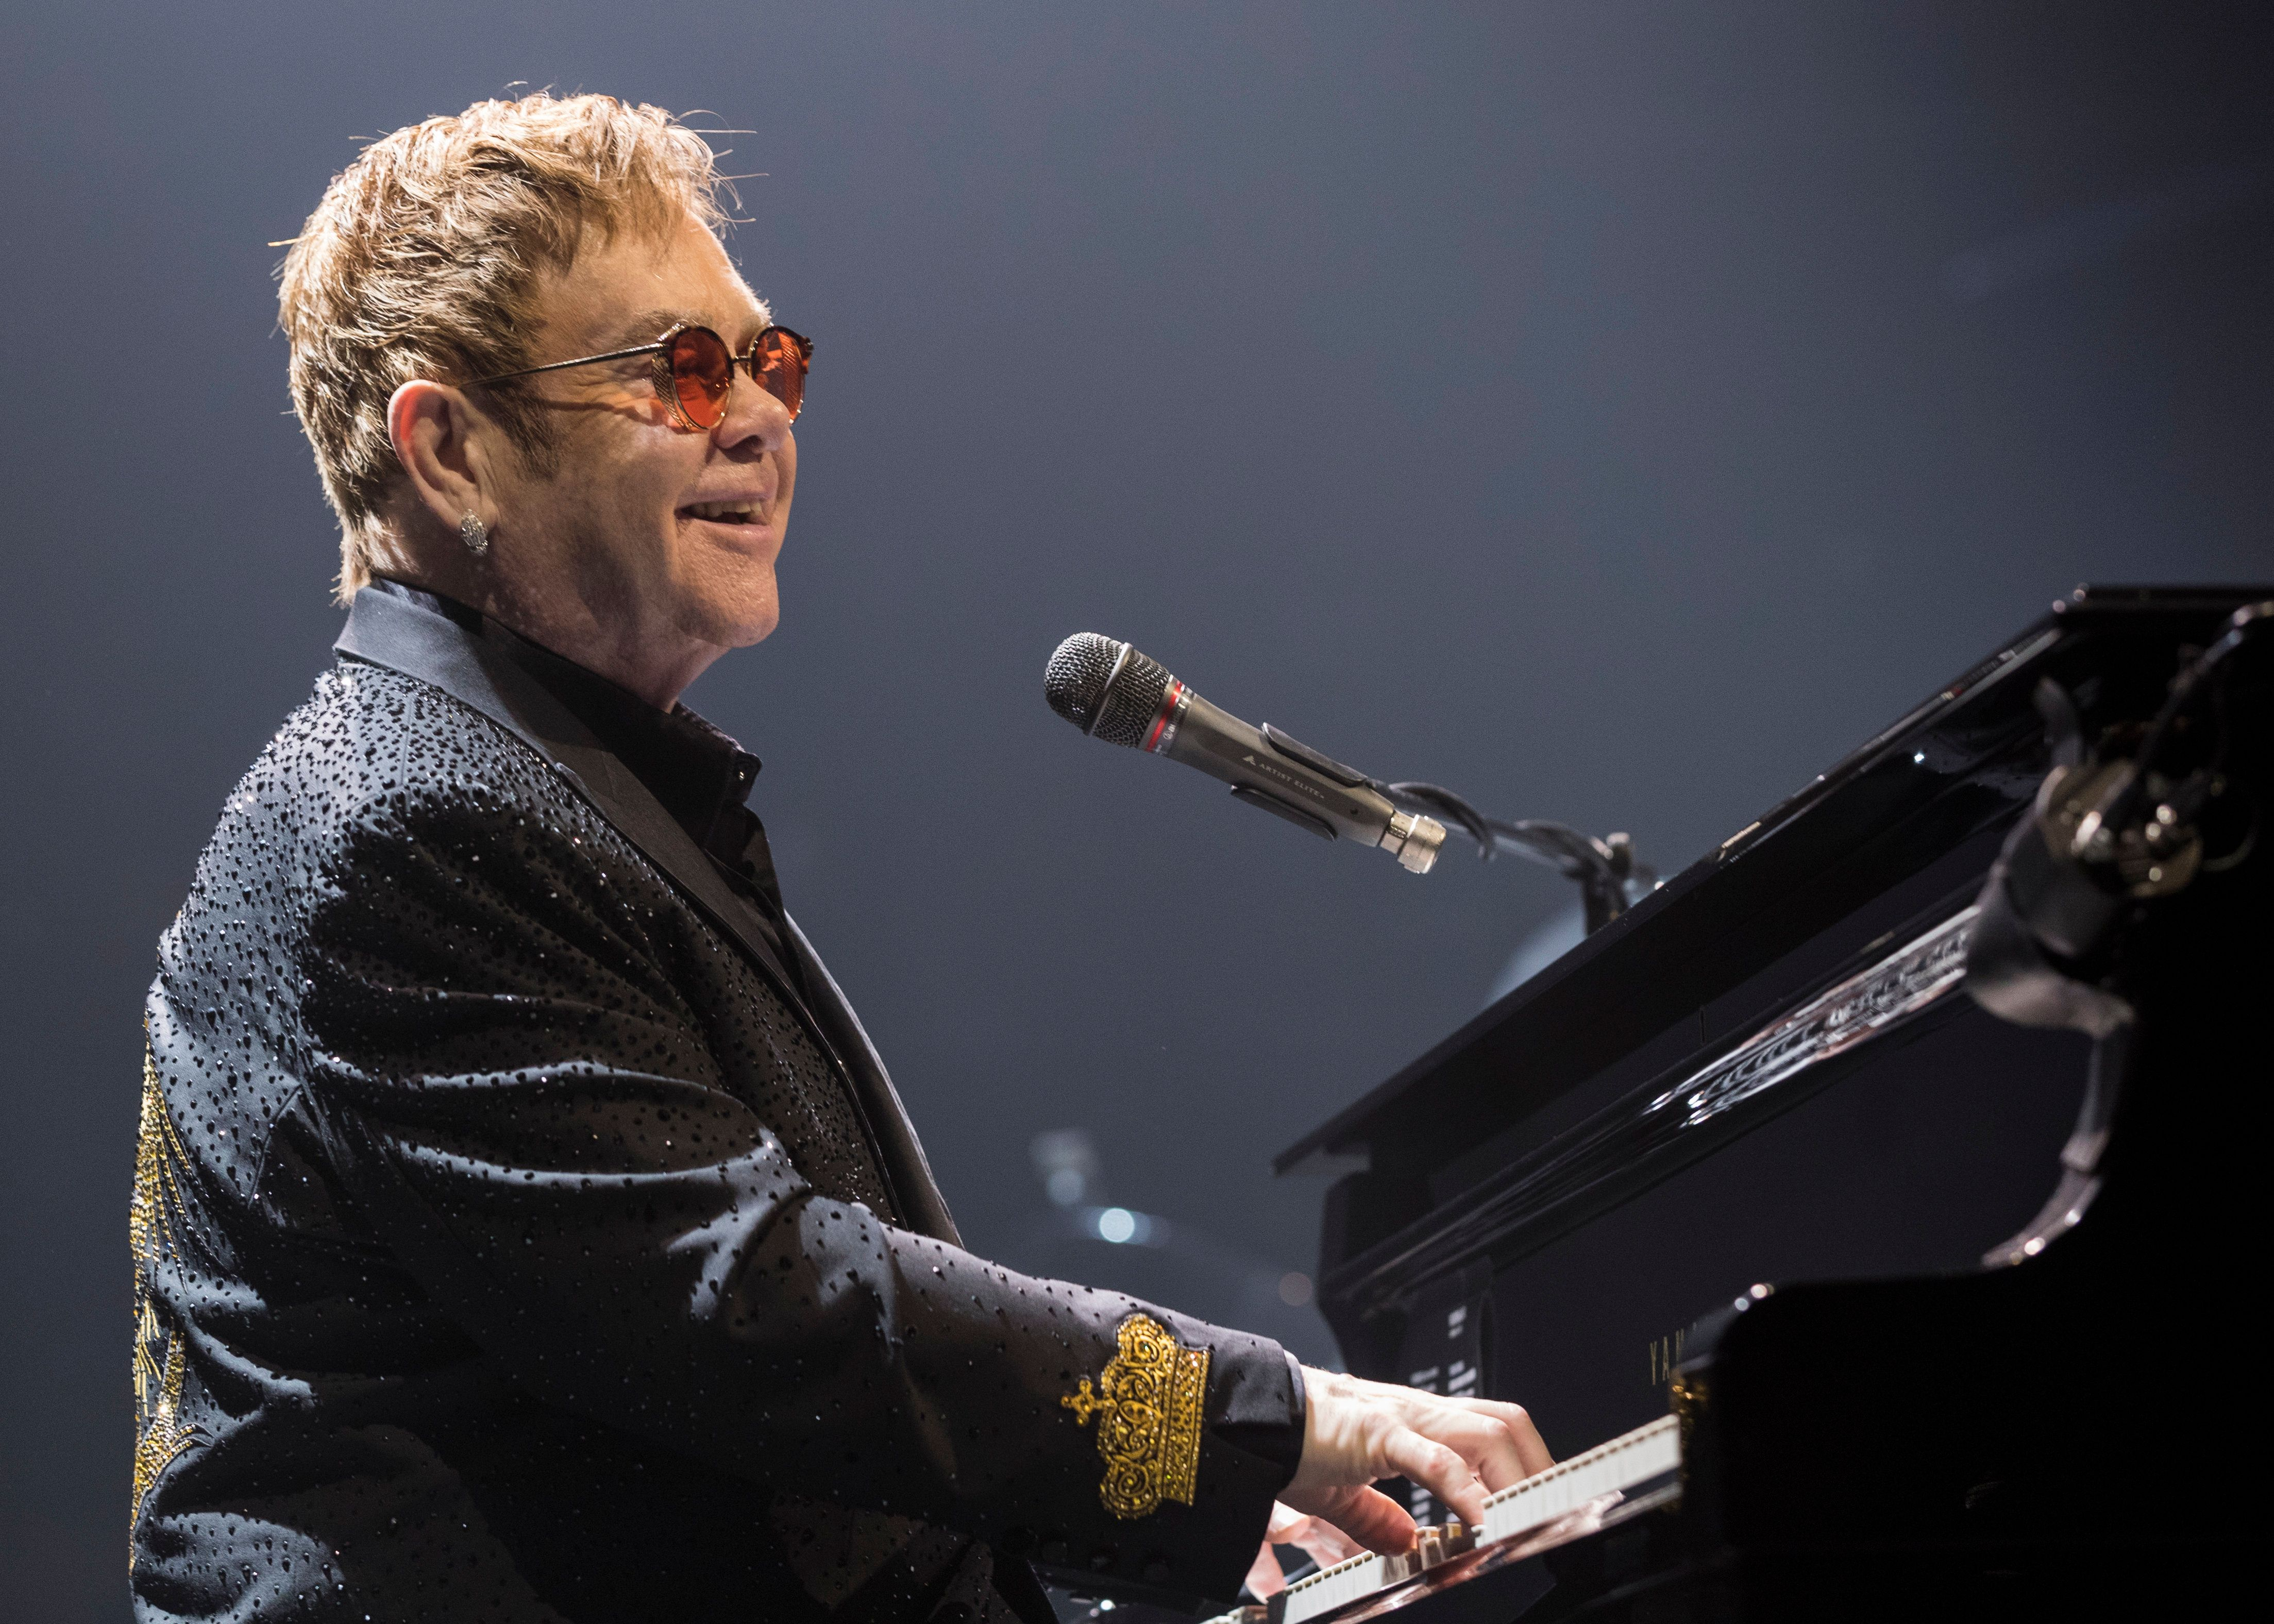 VICTORIA, BC - MARCH 11:  Elton John performs on stage at Save On Foods Memorial Centre on March 11, 2017 in Victoria, Canada.  (Photo by Andrew Chin/Getty Images)